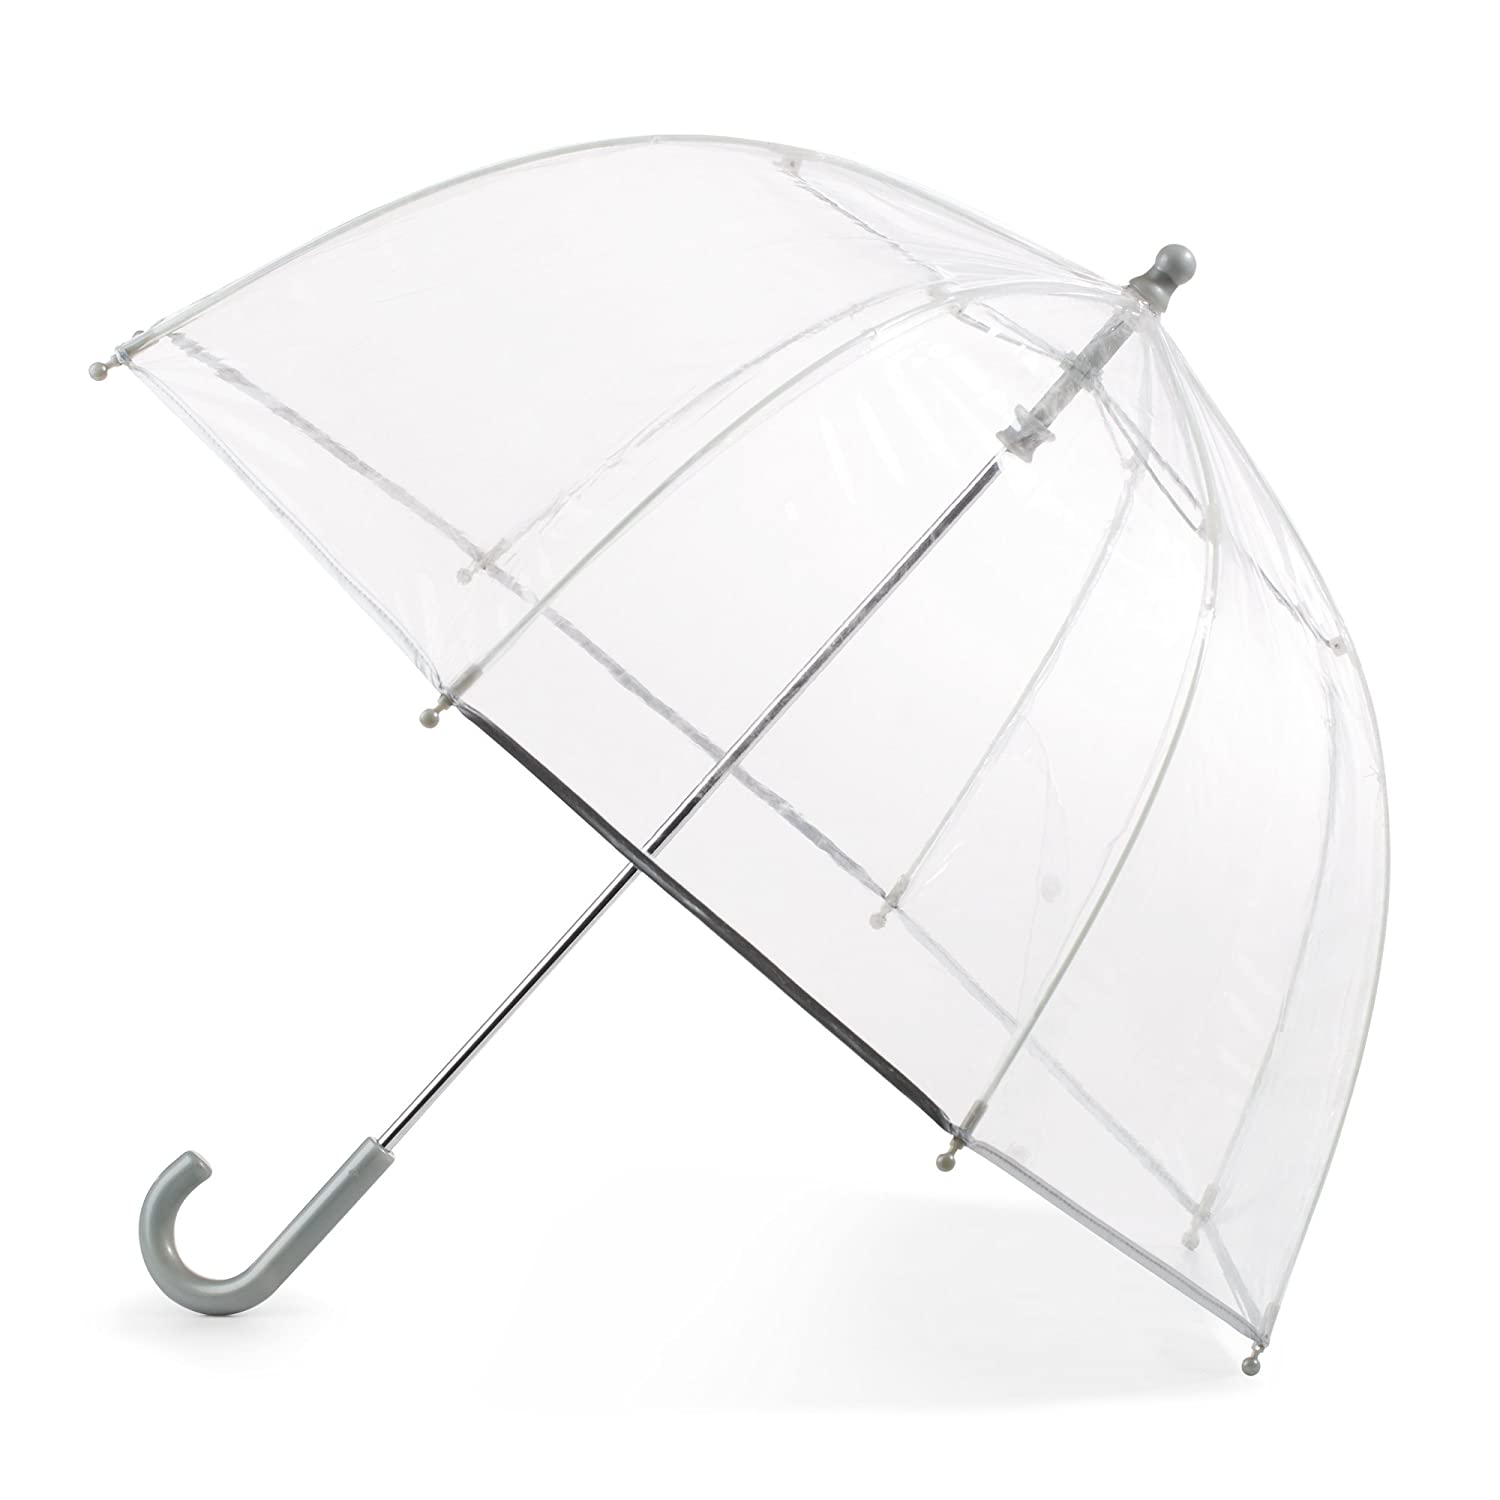 Totes Kid's Bubble Umbrella with Easy Grip Handle, Clear